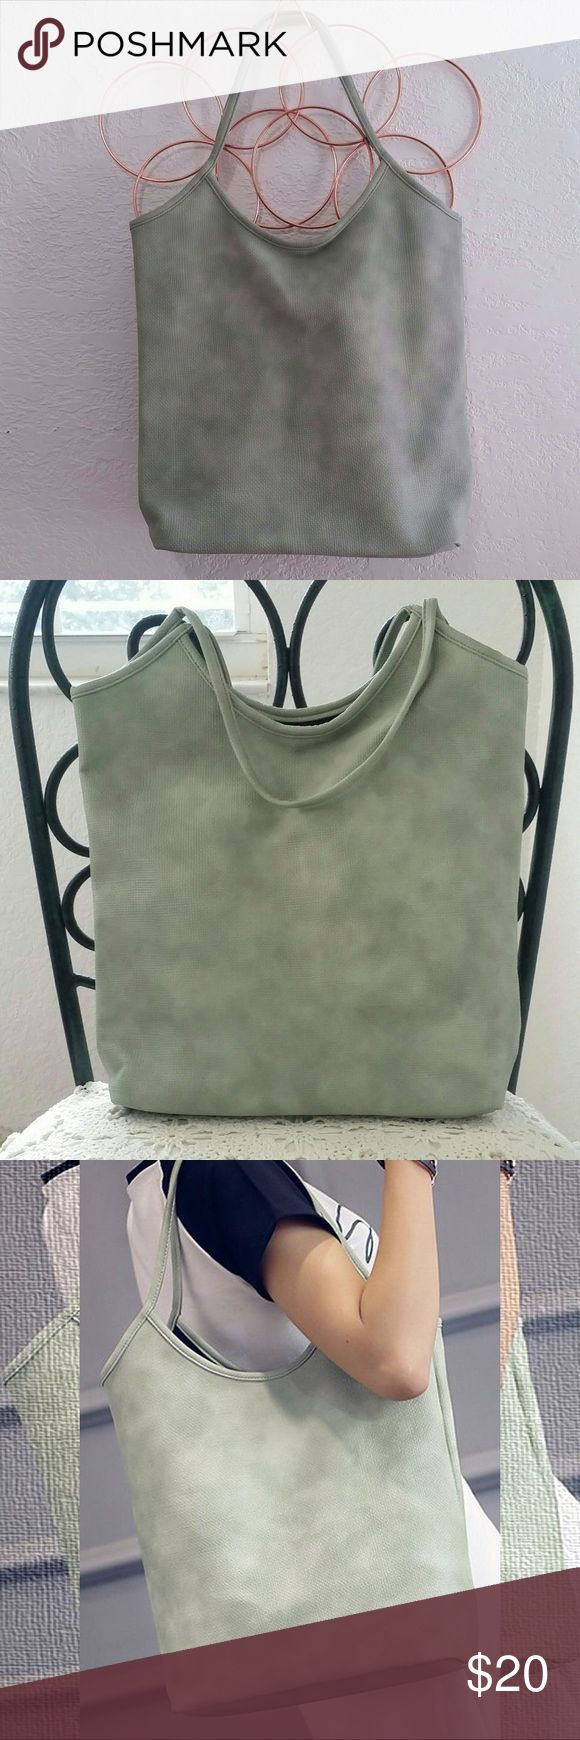 "Sage Green Tote Bag Beautiful Pebbled Faux Leather with black interior, no pockets - approx 15"" * 13"" * 5"" Firm Price Boutique Bags Totes"